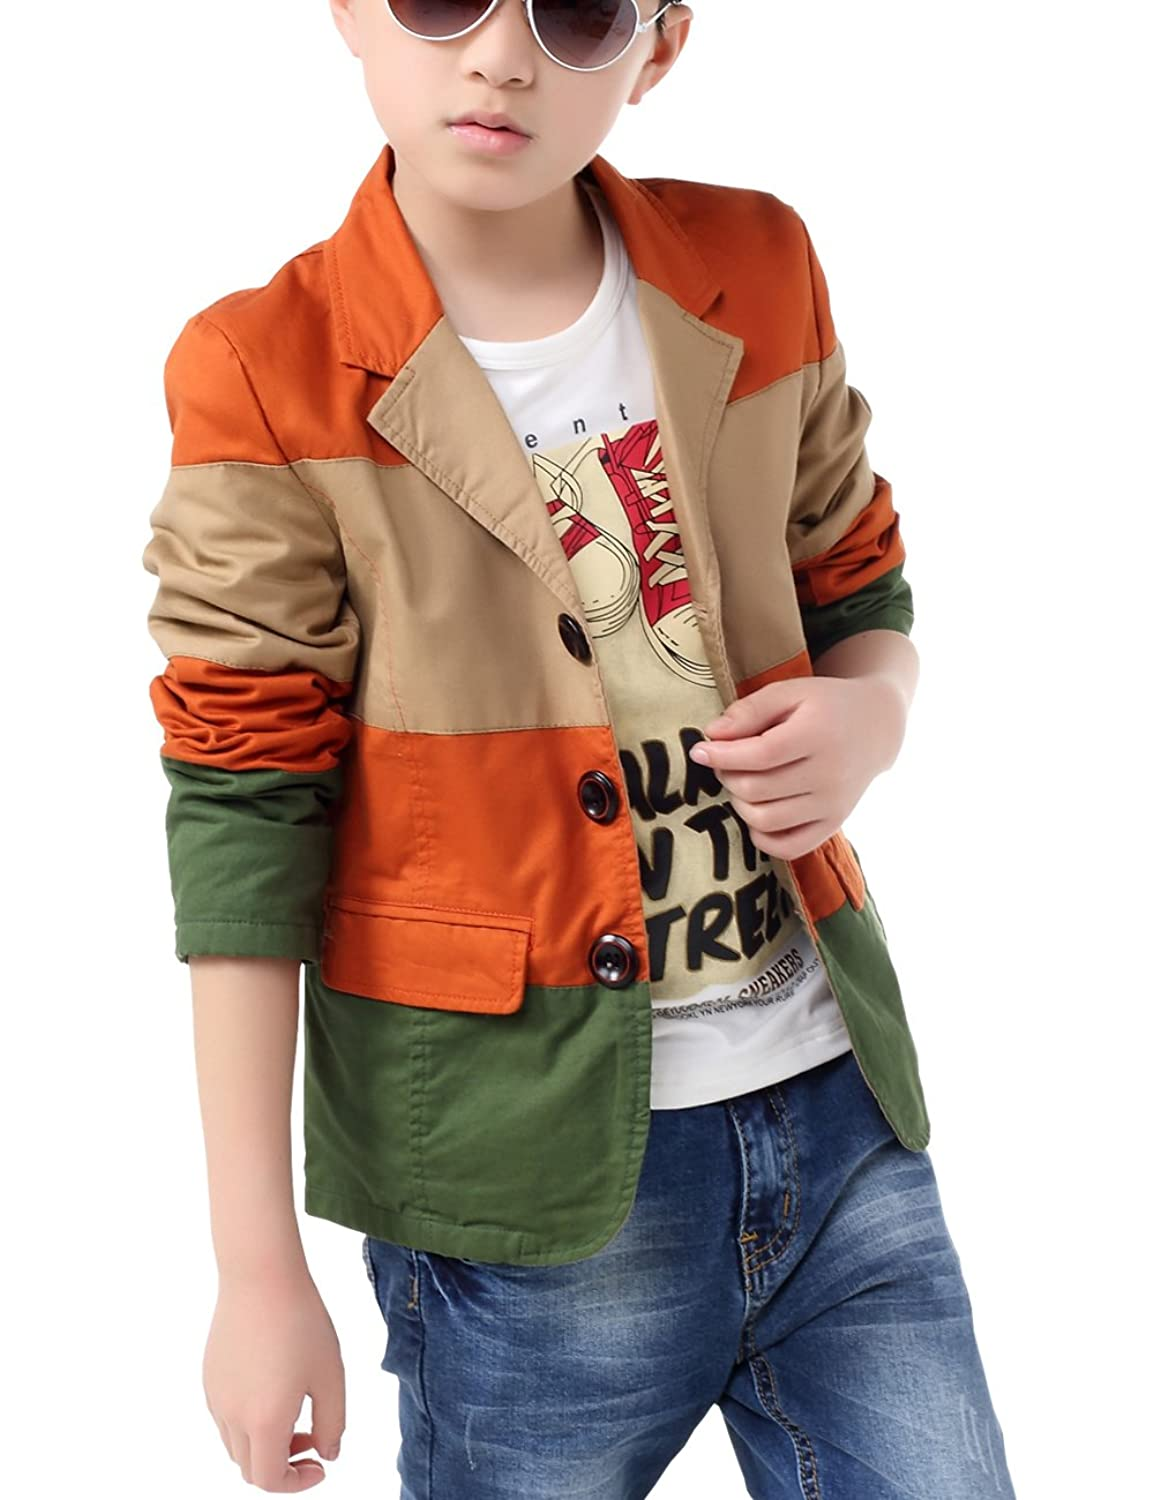 08e2c2a5531 suitable for spring and fall, even winter, boys between 4 and 14 years old  tie-in proposal: jeans of recreational blazer jacket collocation, ...